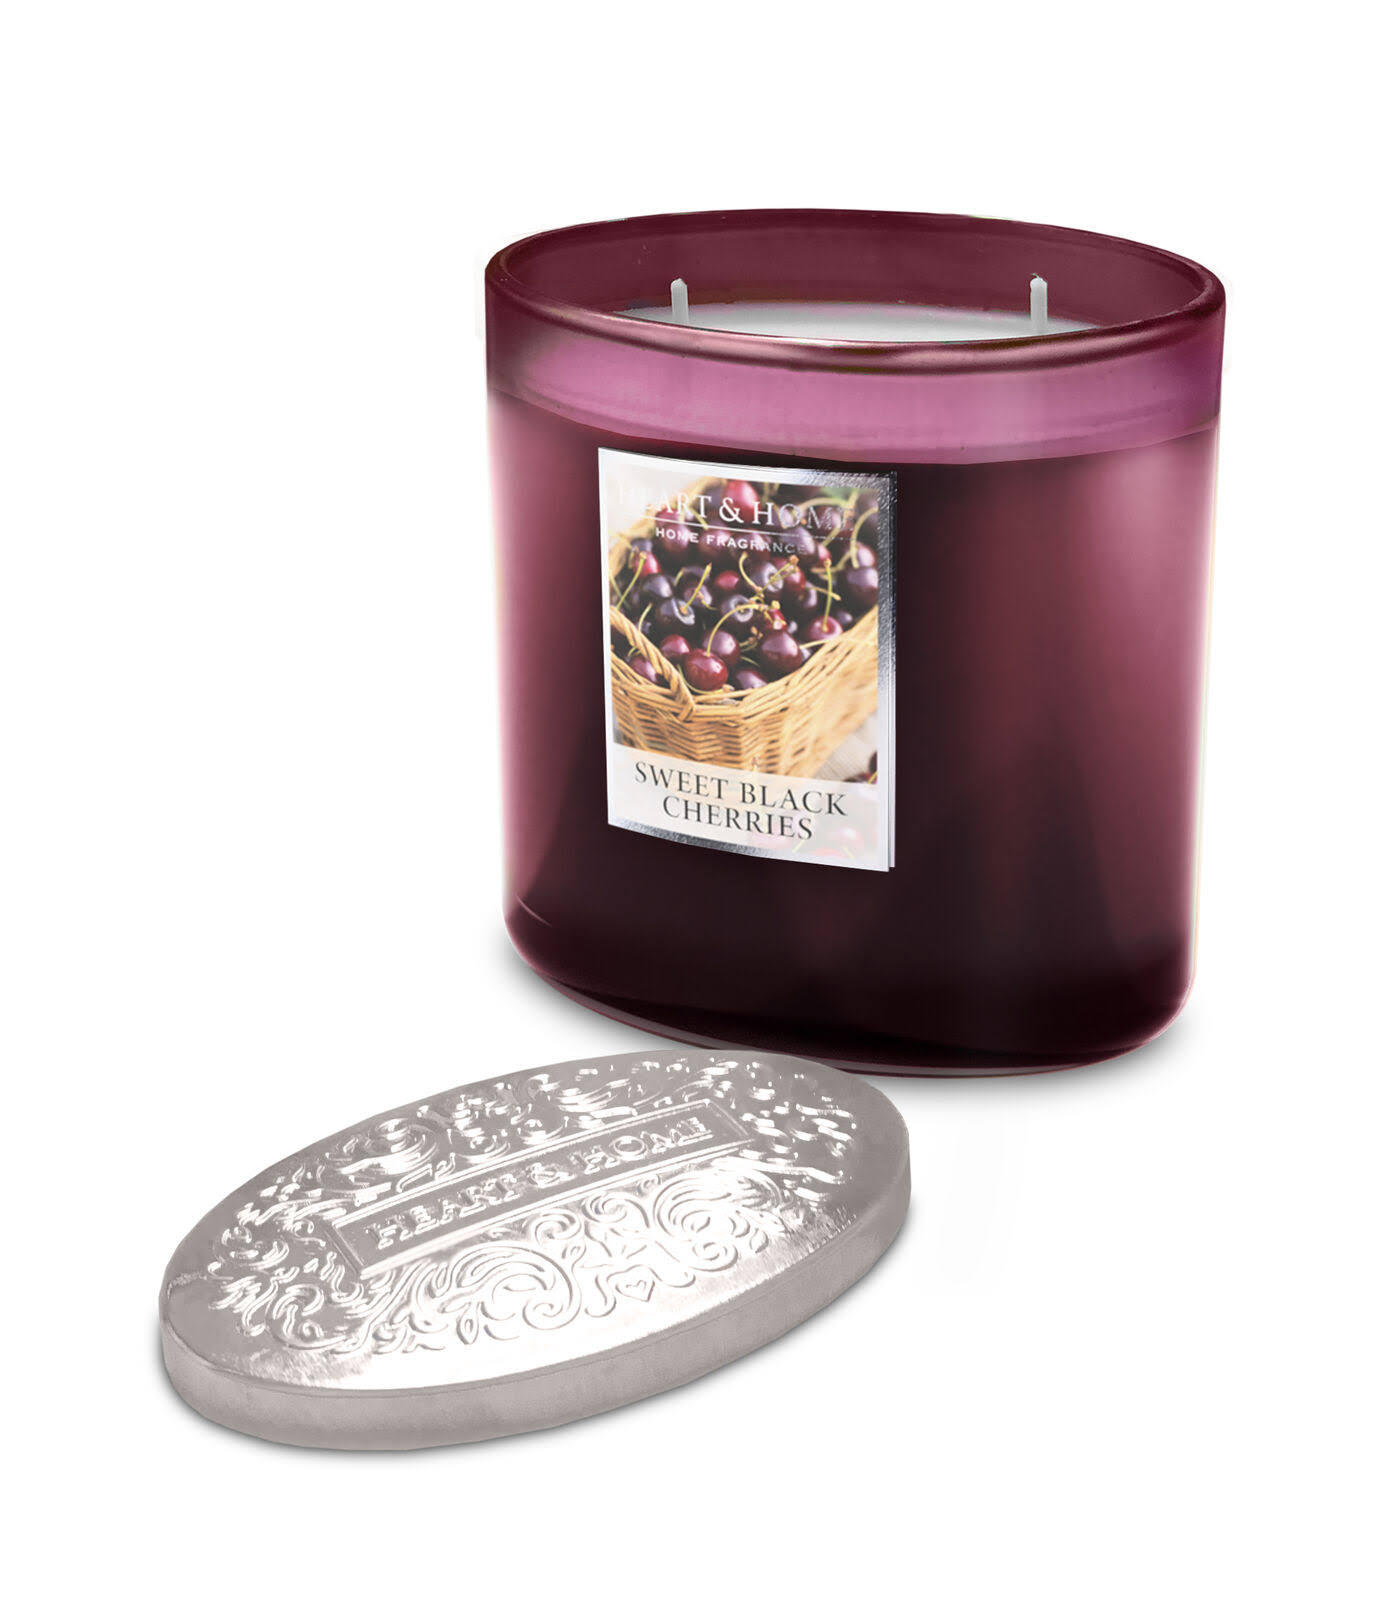 Heart & Home Ellipse Candle, 2 Wick - Sweet Black Cherries